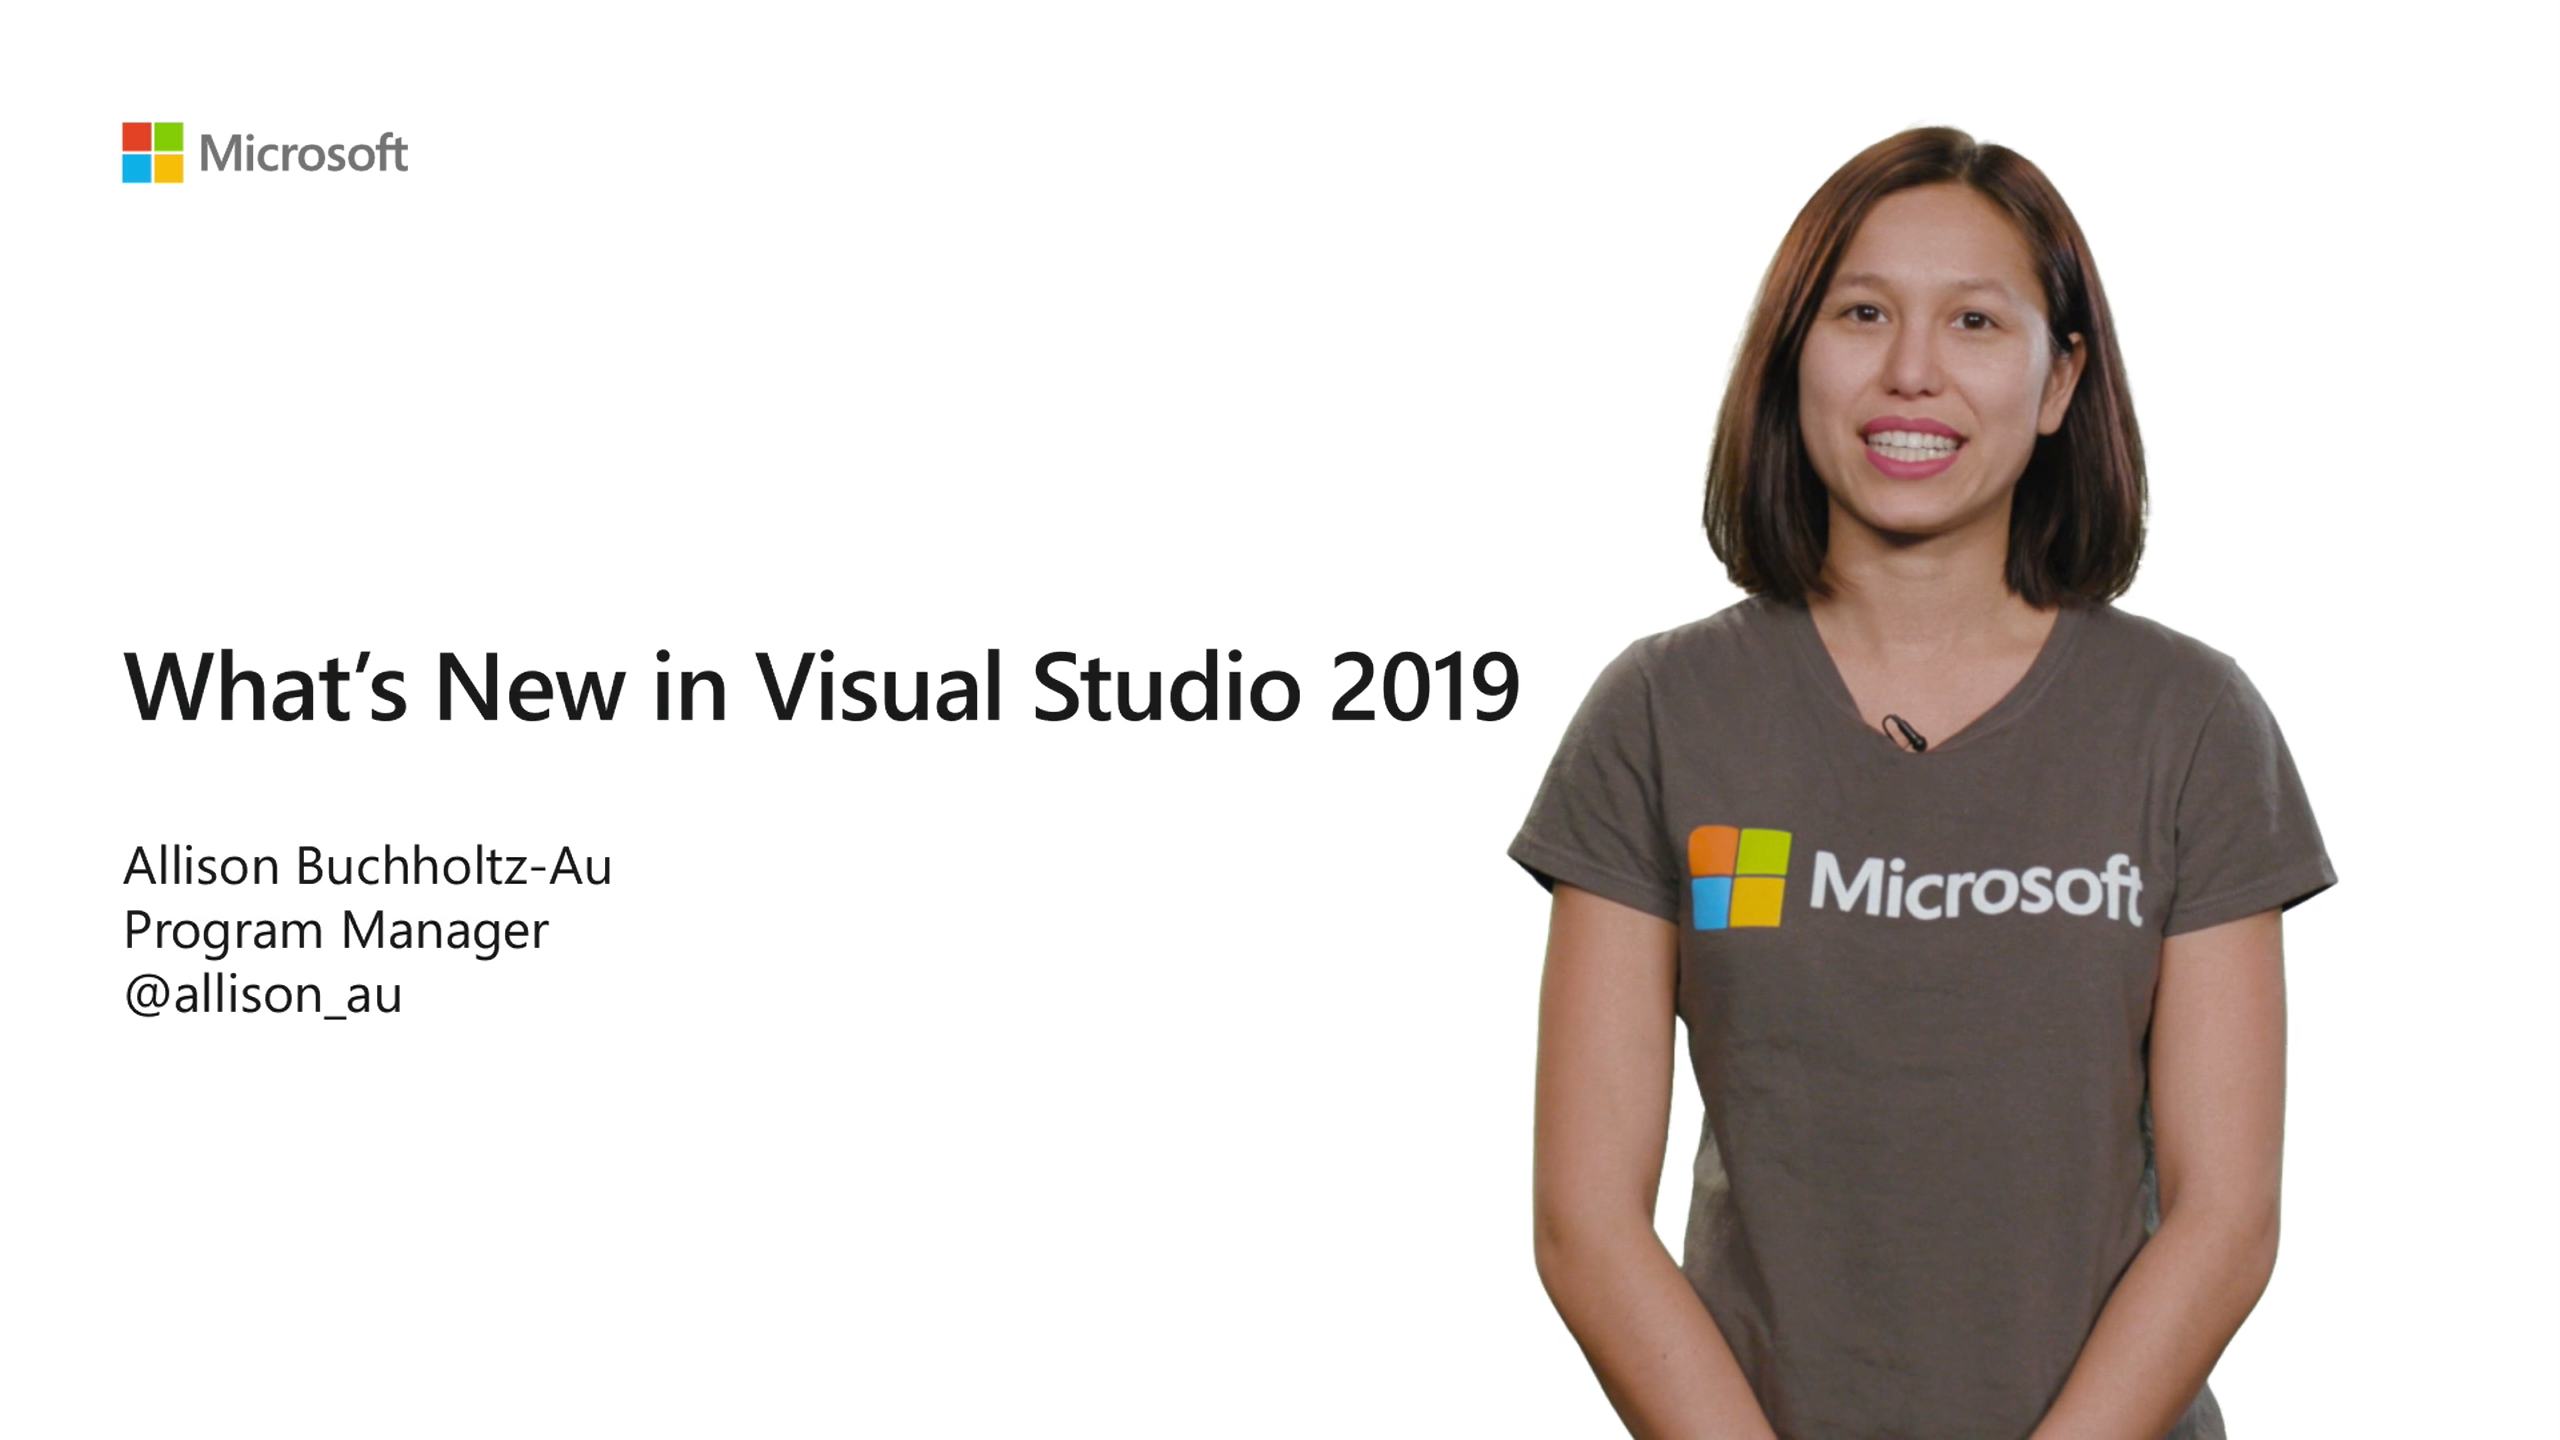 What's New in Visual Studio 2019